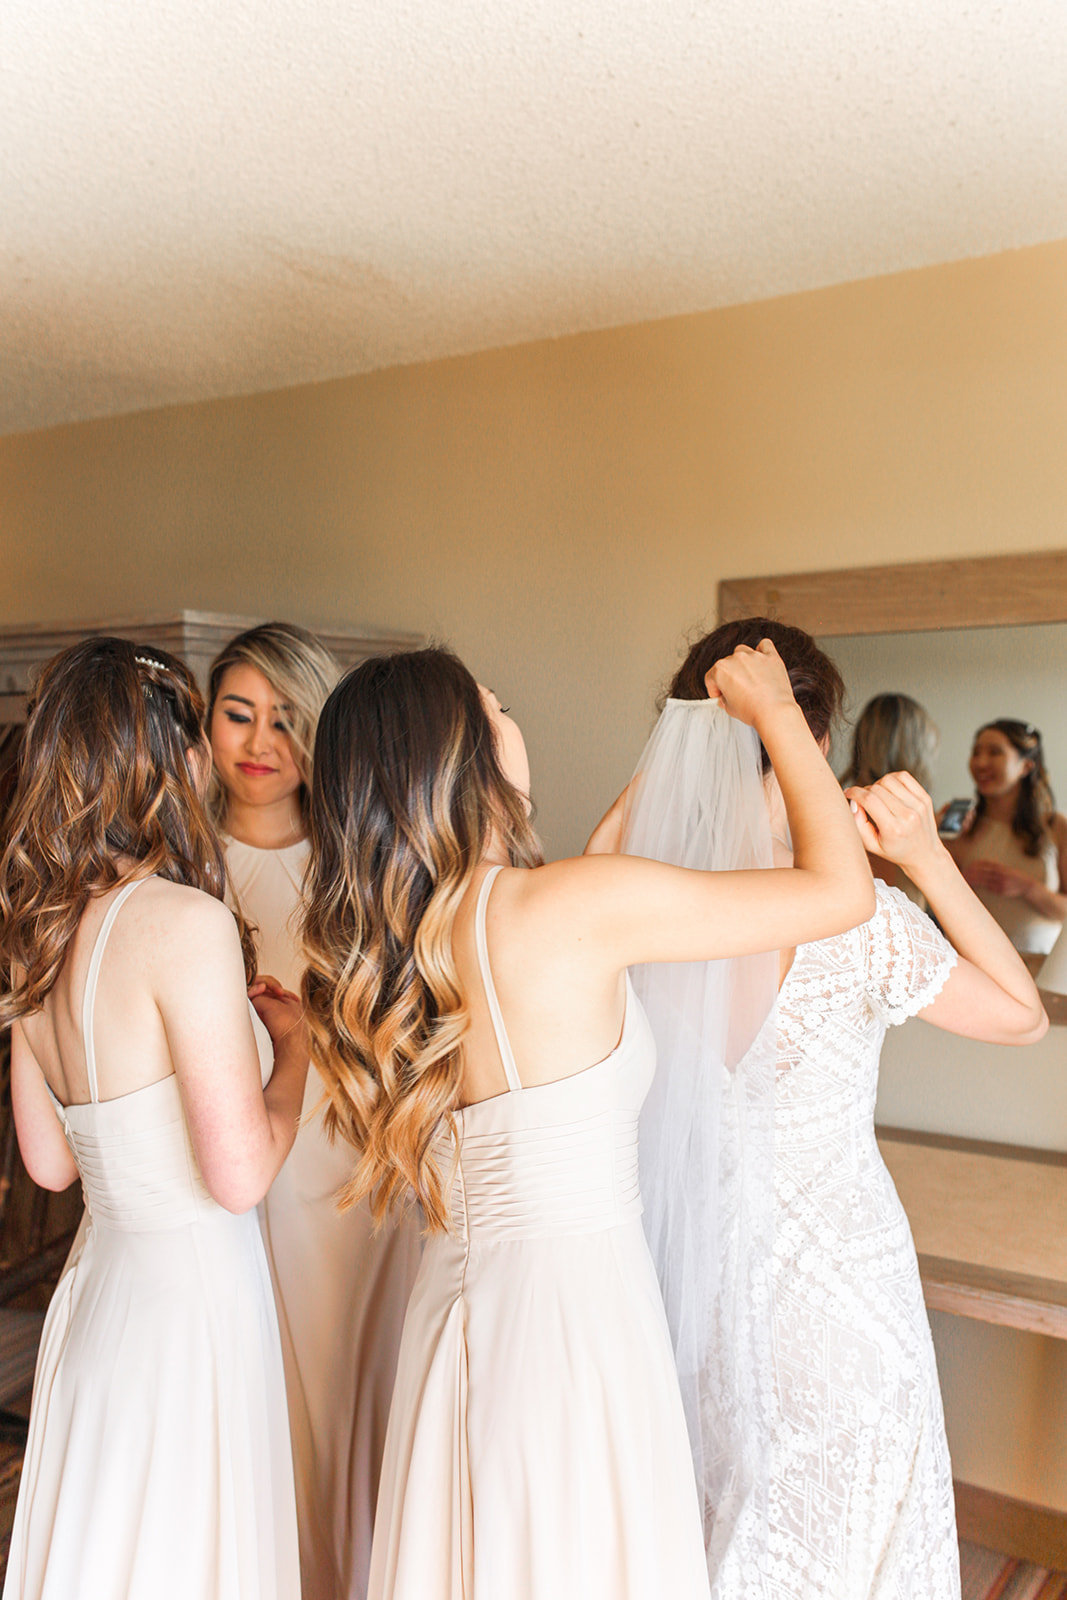 Albuquerque Wedding Photographer_Hotel Albuquerque_www.tylerbrooke.com_Kate Kauffman_021